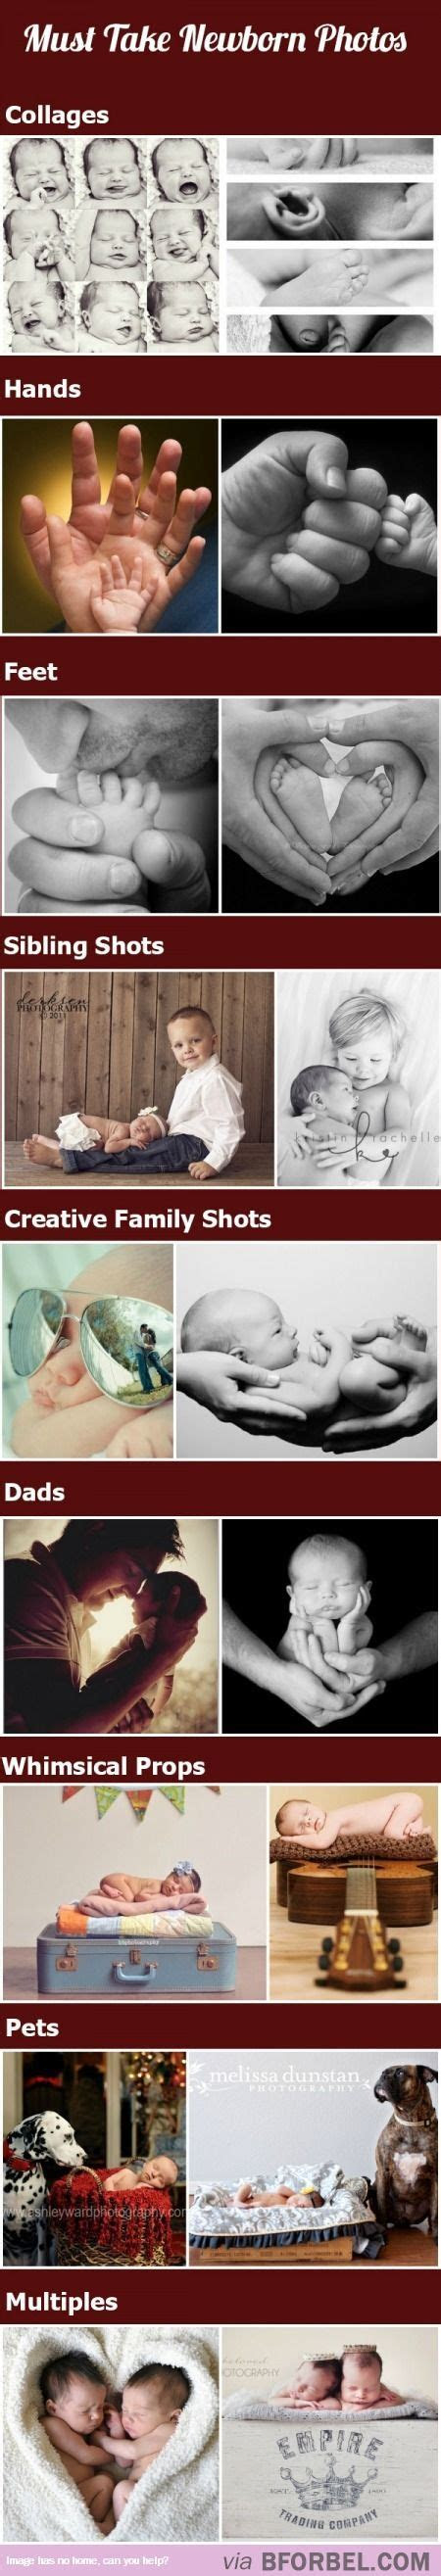 New Ideas For New Born Baby Photography : 9 Must Take